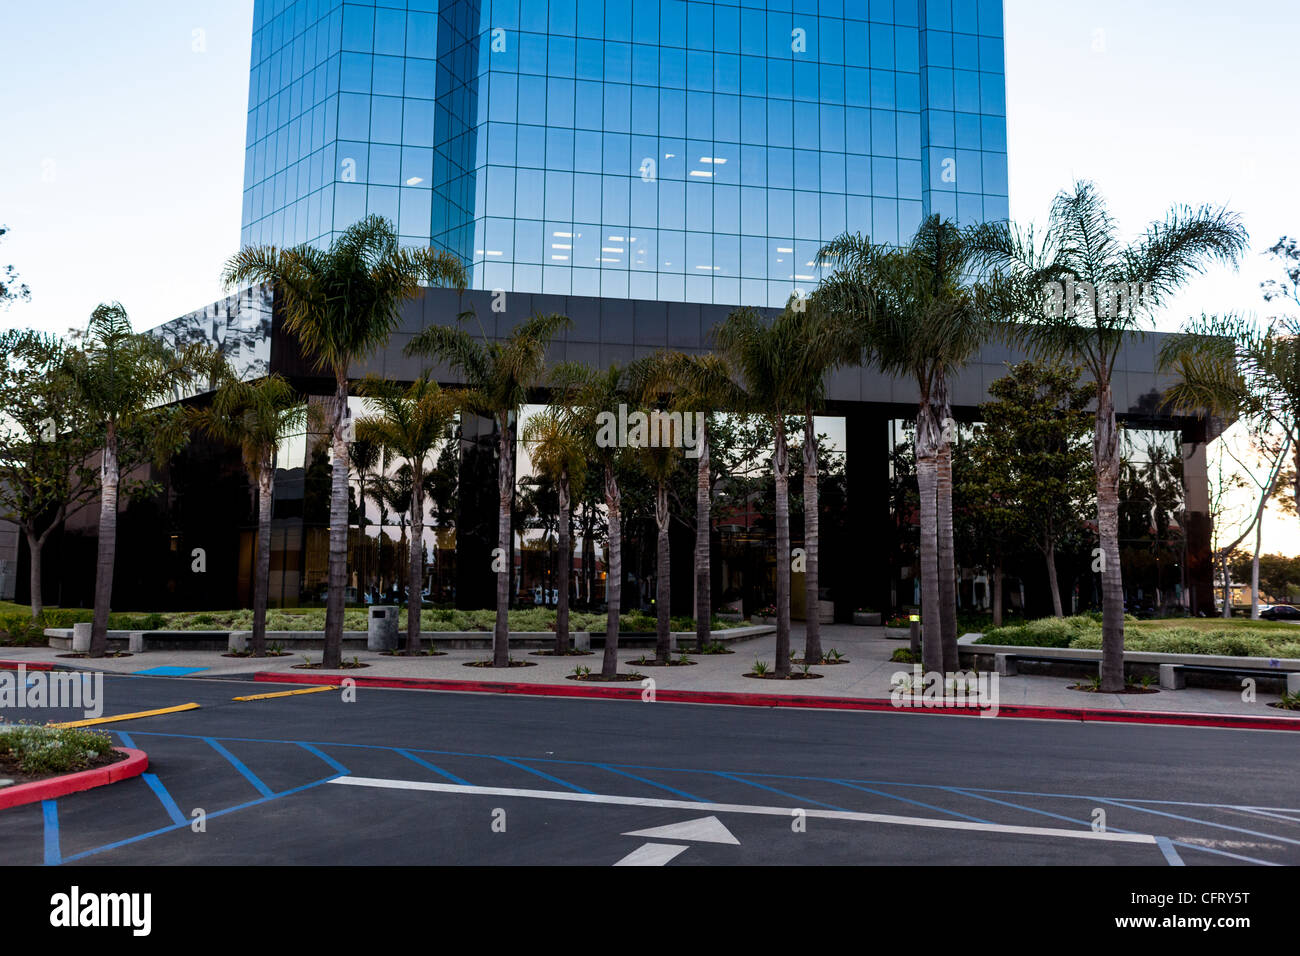 High rise building for digital background - Stock Image